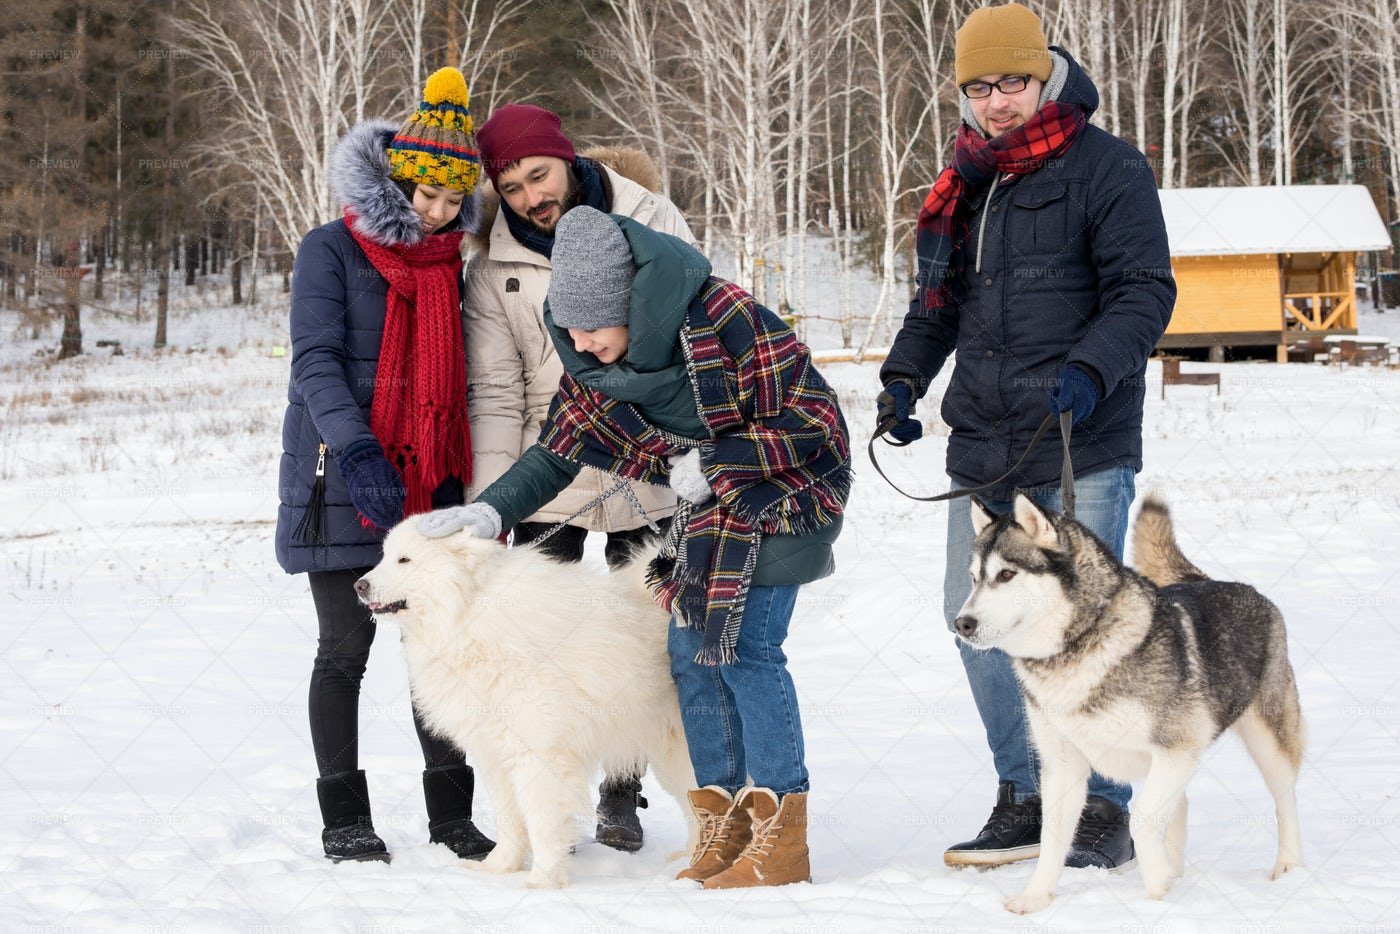 Young People Playing With Husky...: Stock Photos